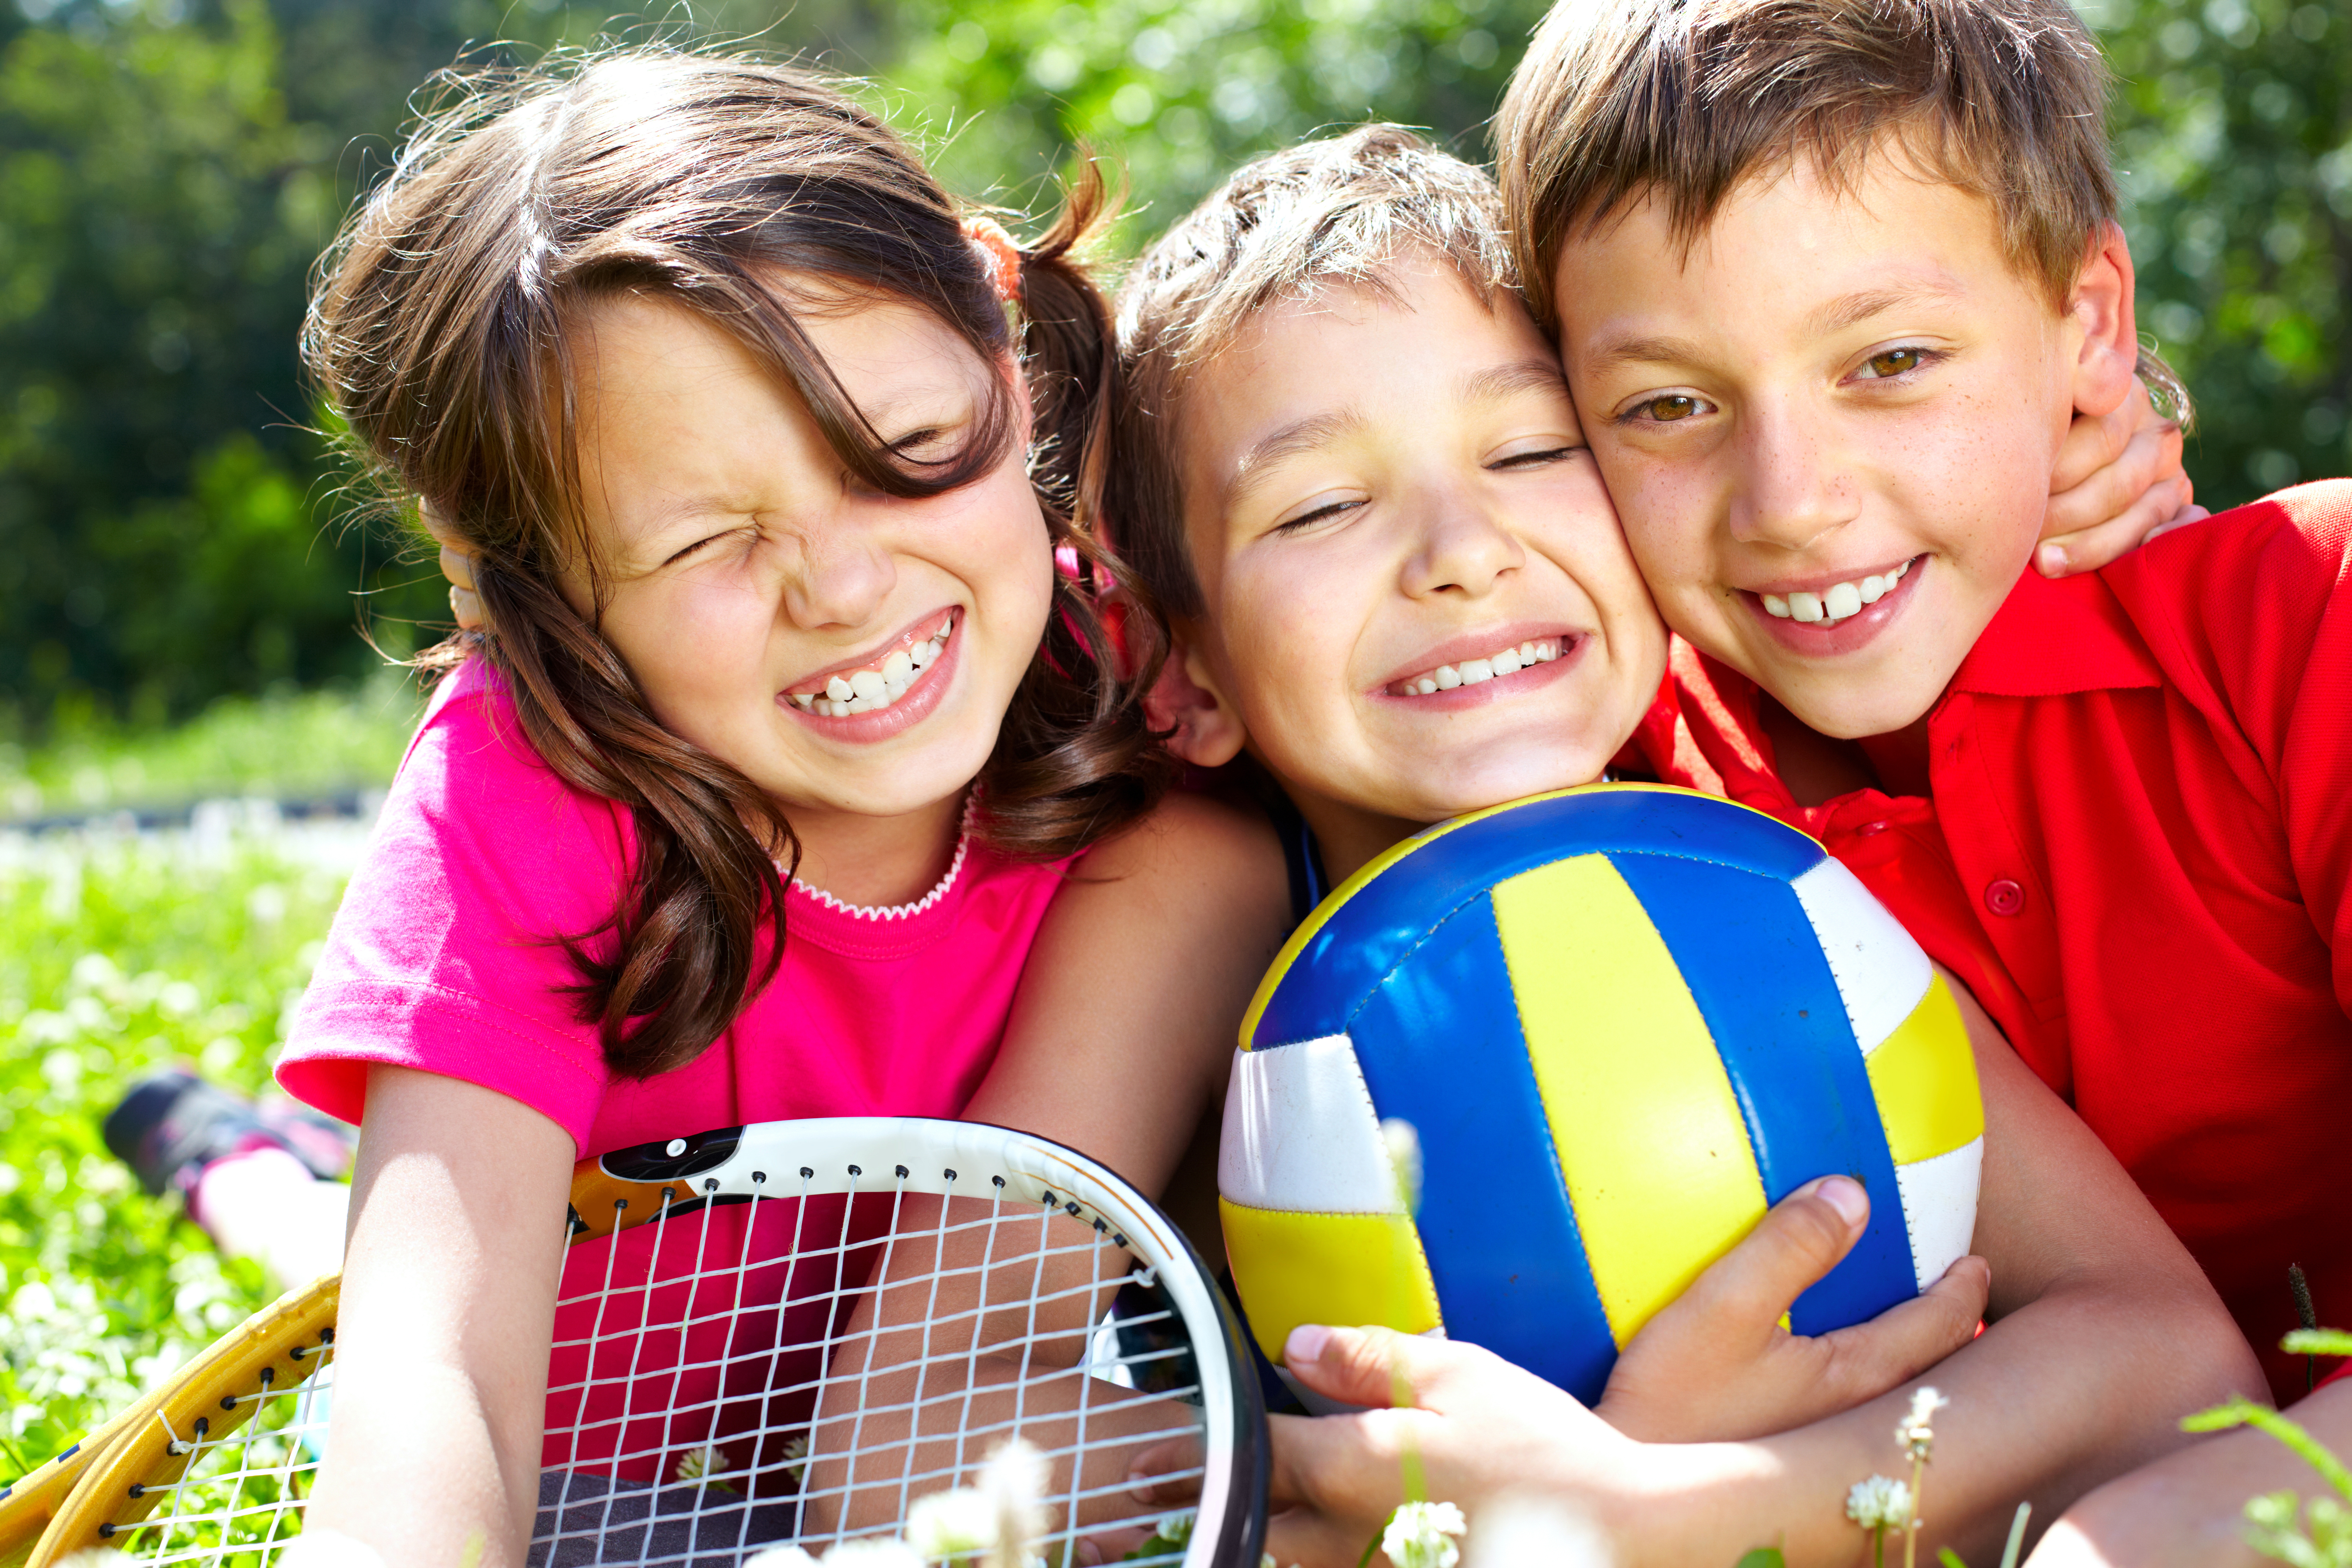 kids-sports-outside-together-concept